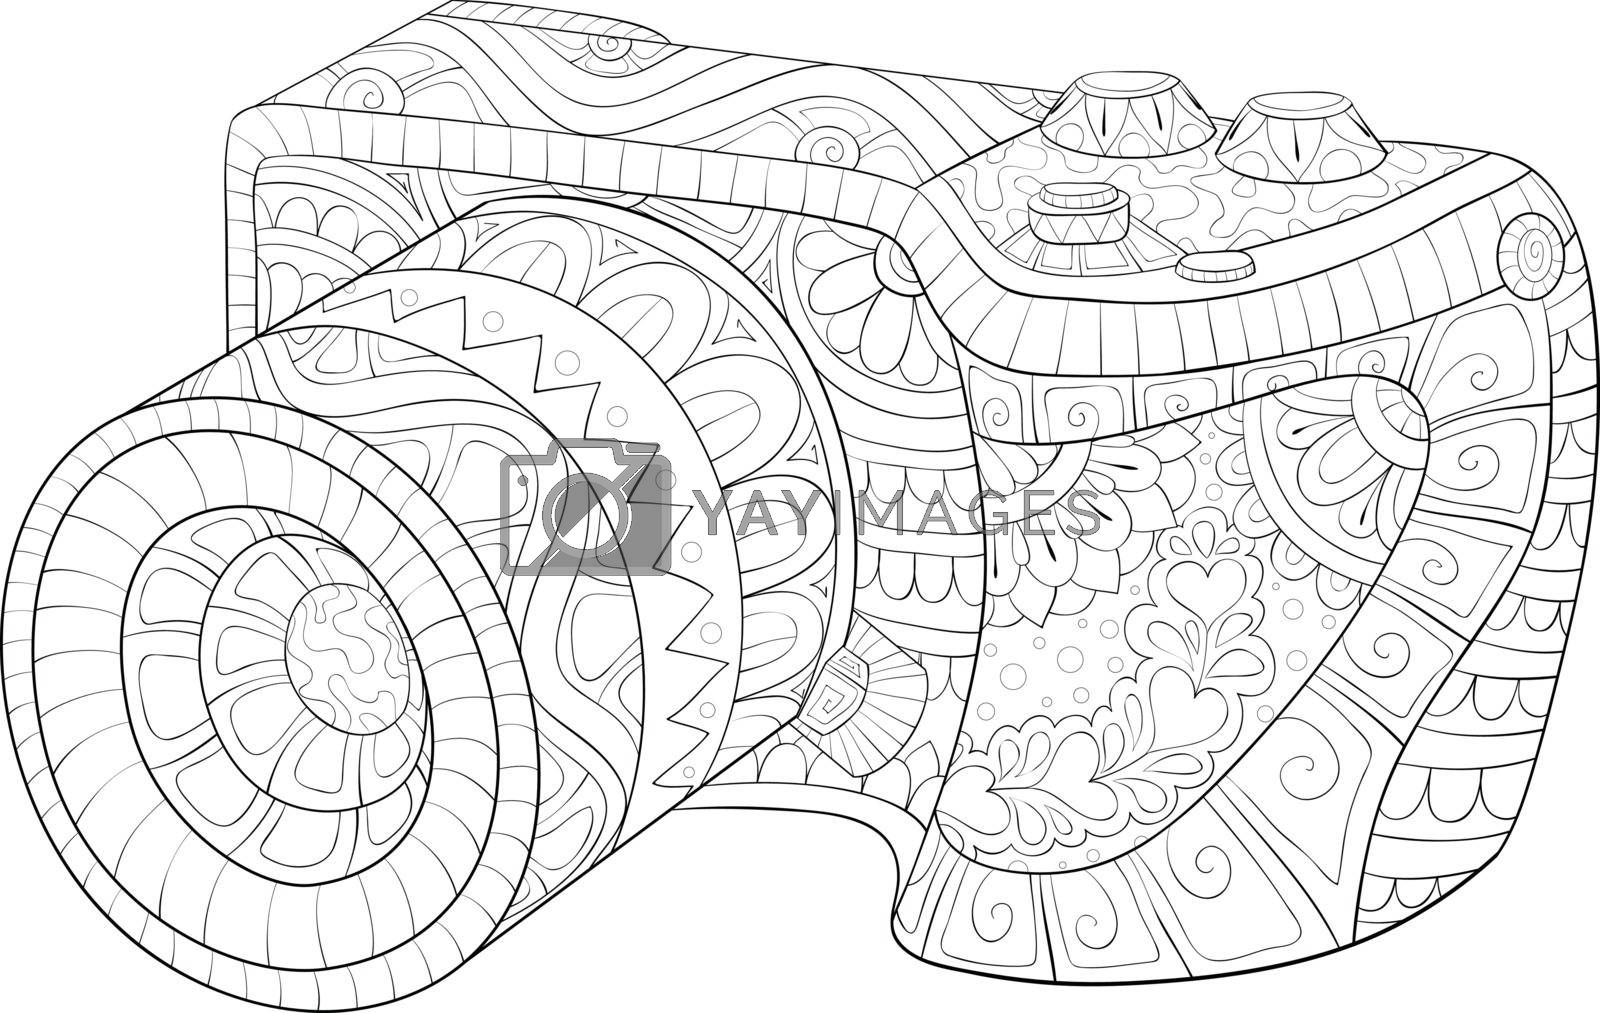 A cute camera with ornaments image for relaxing activity.Coloring book,page for adults.Zen art style illustration for print.Poster design.